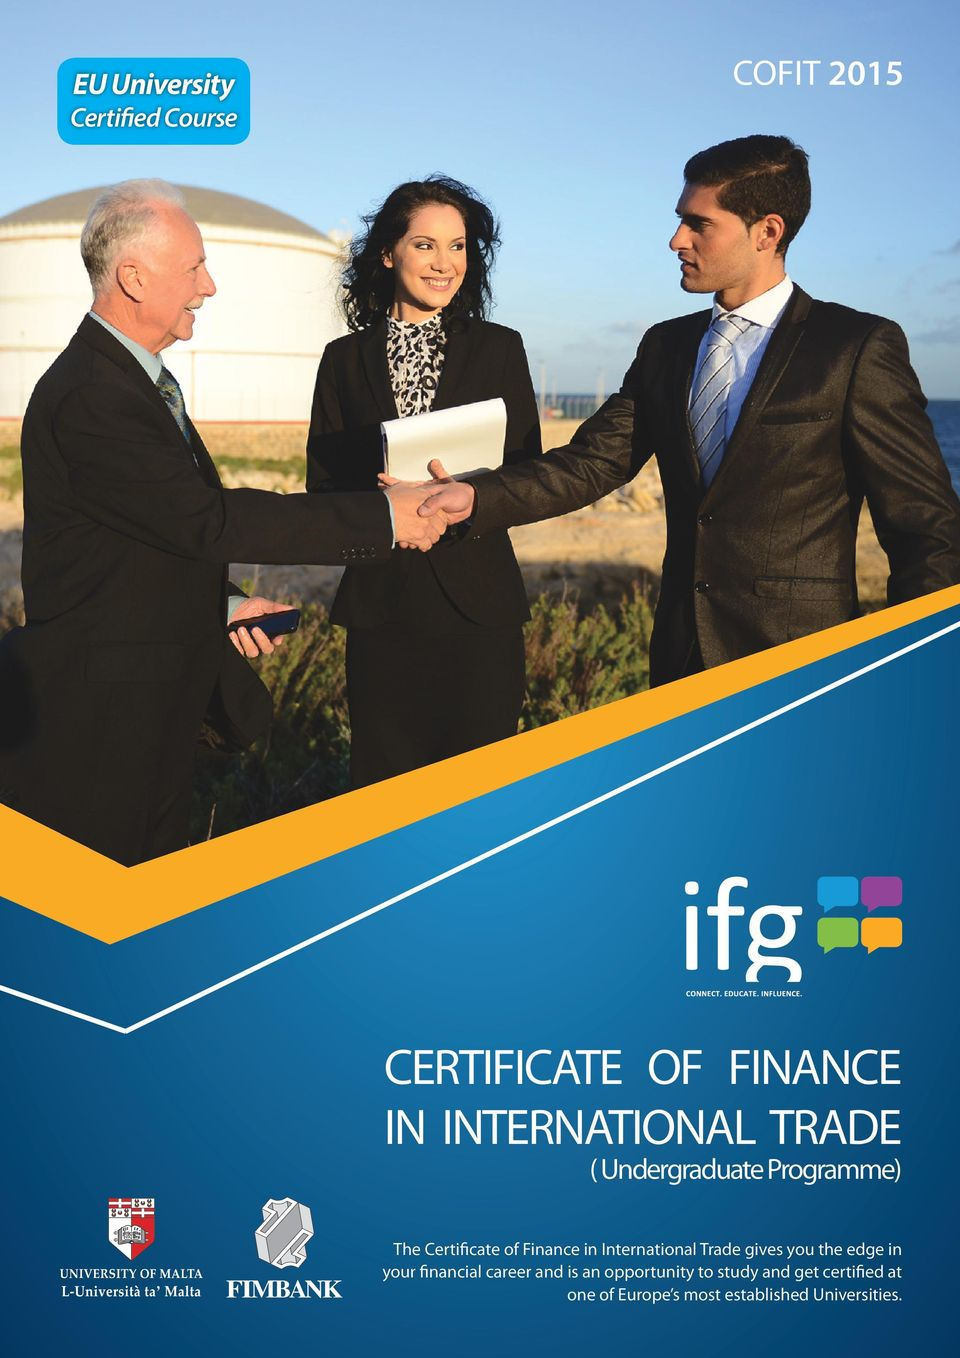 International Trade gives you the edge in your financial career and is an